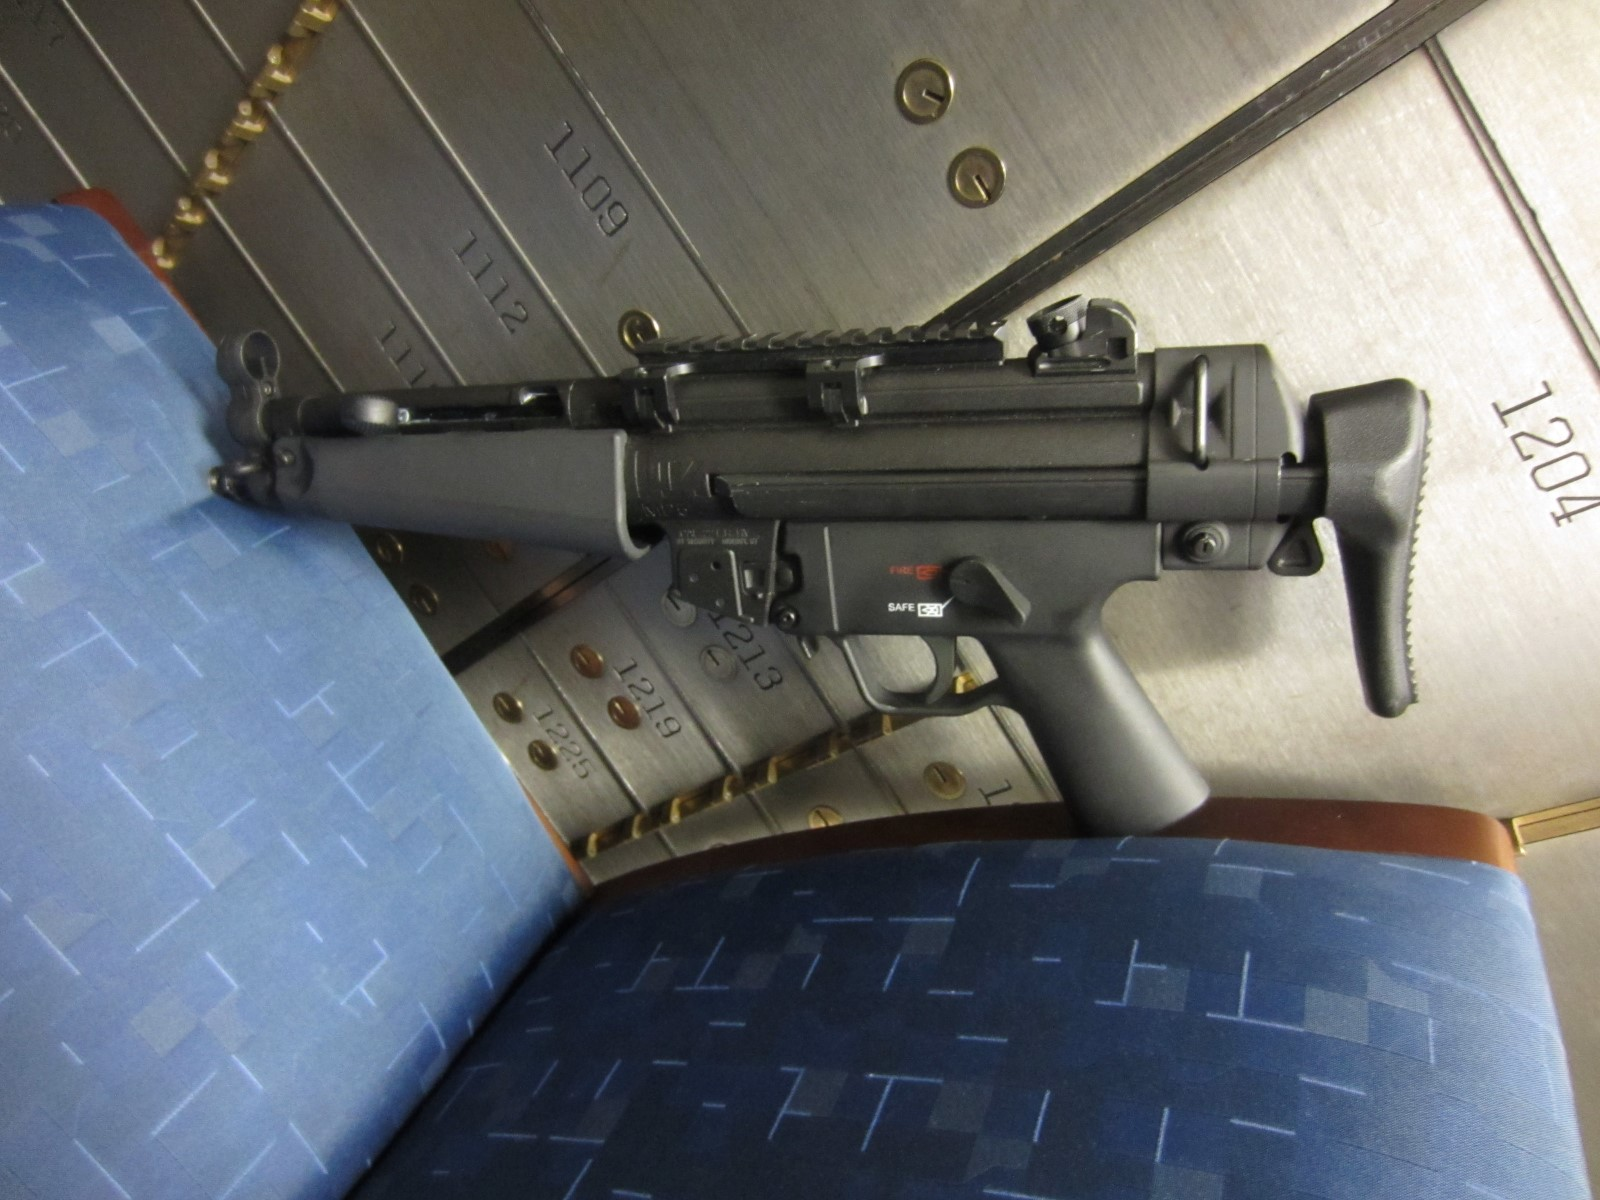 HOW-TO: Convert Umarex MP5 SD -> A5 and SBR the Umarex MP5 A5-pic8.jpg